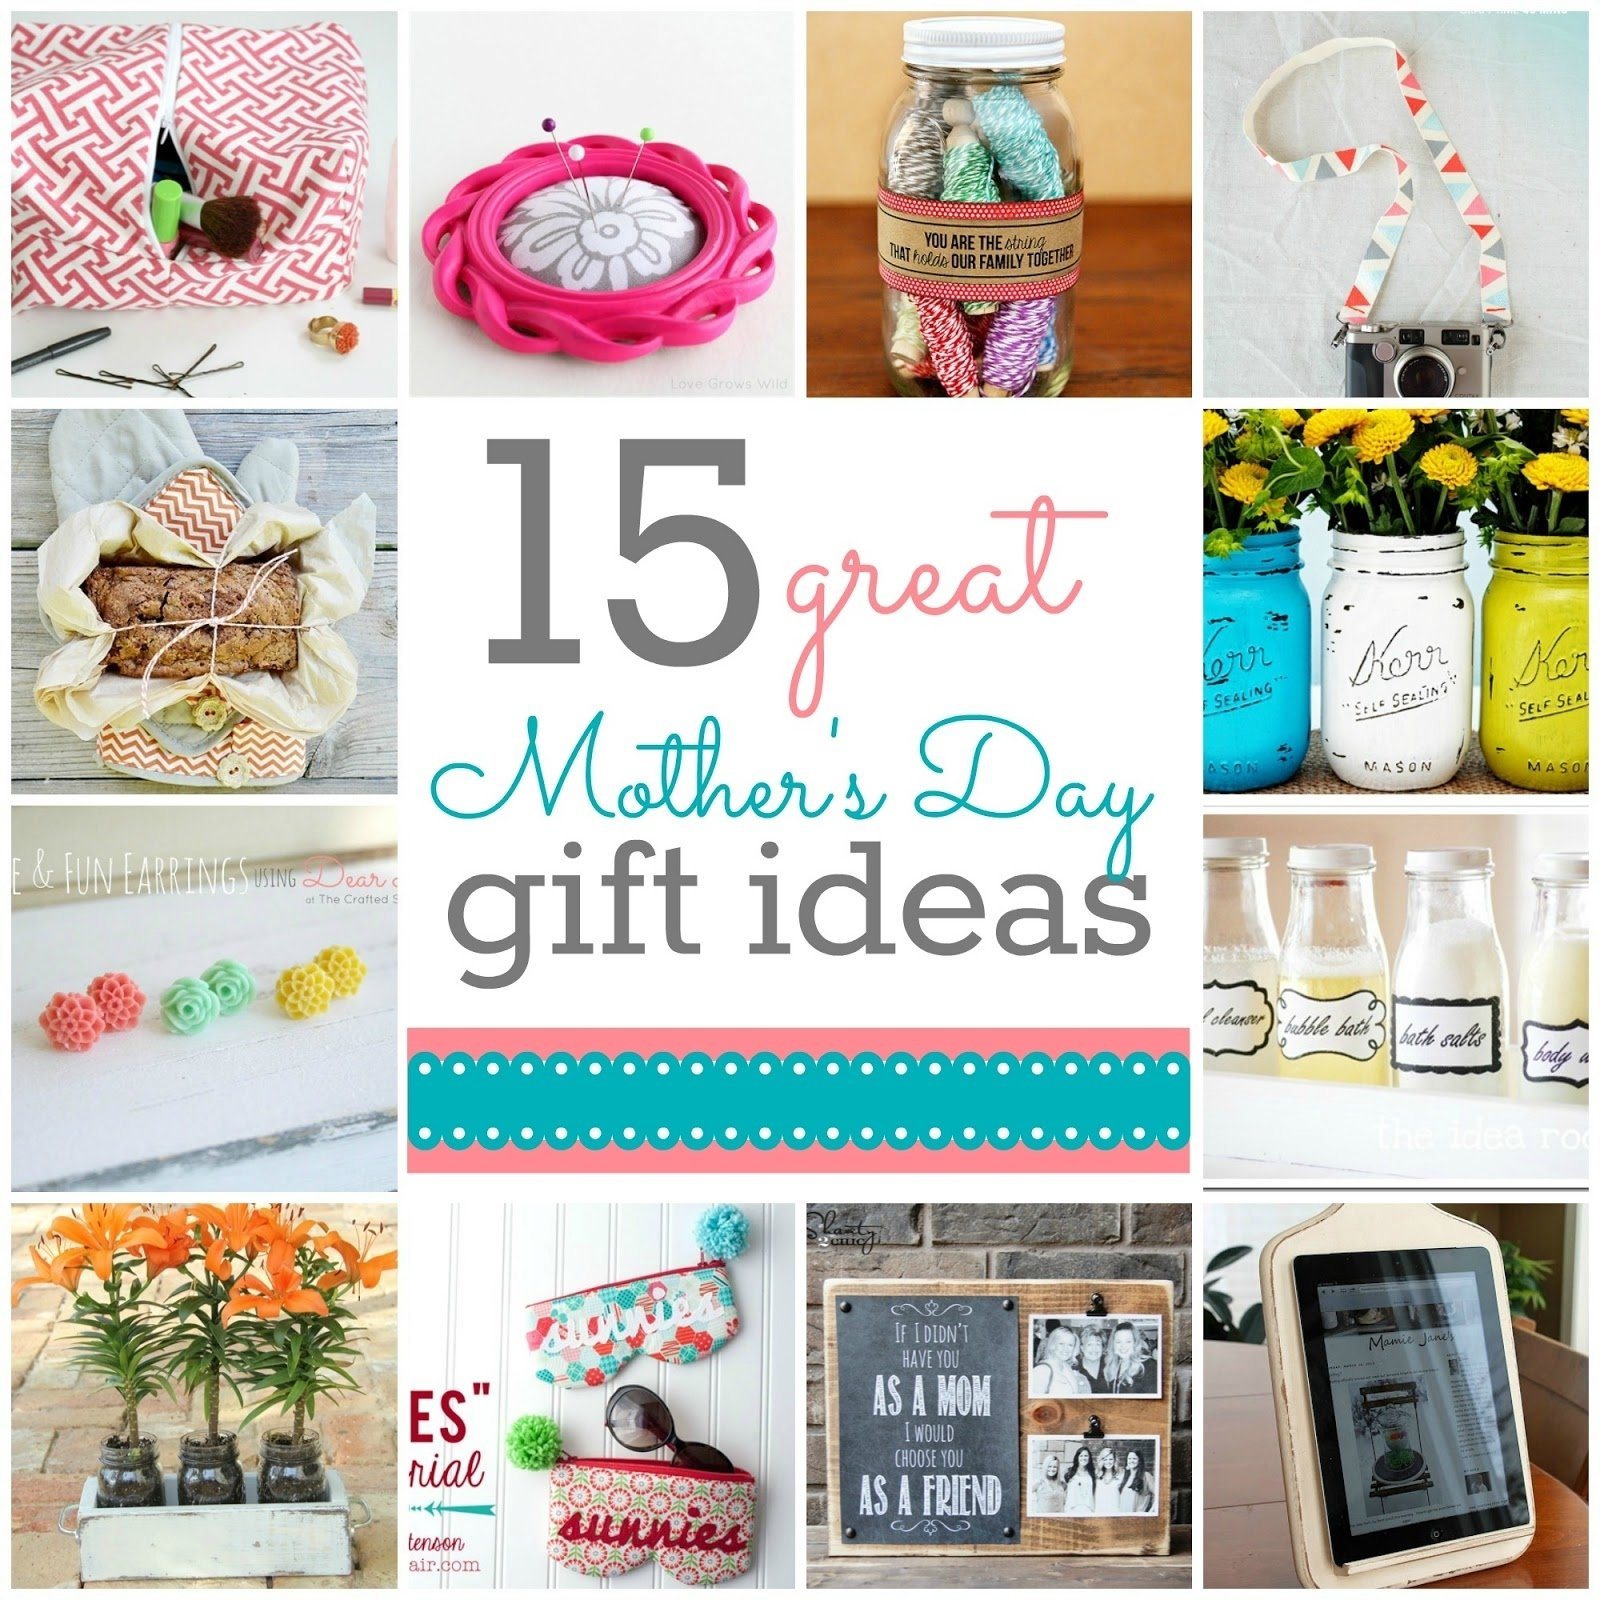 10 Stylish Birthday Gifts For Mom Ideas mothers day gift ideas an epic giveaway the crafted sparrow 9 2020